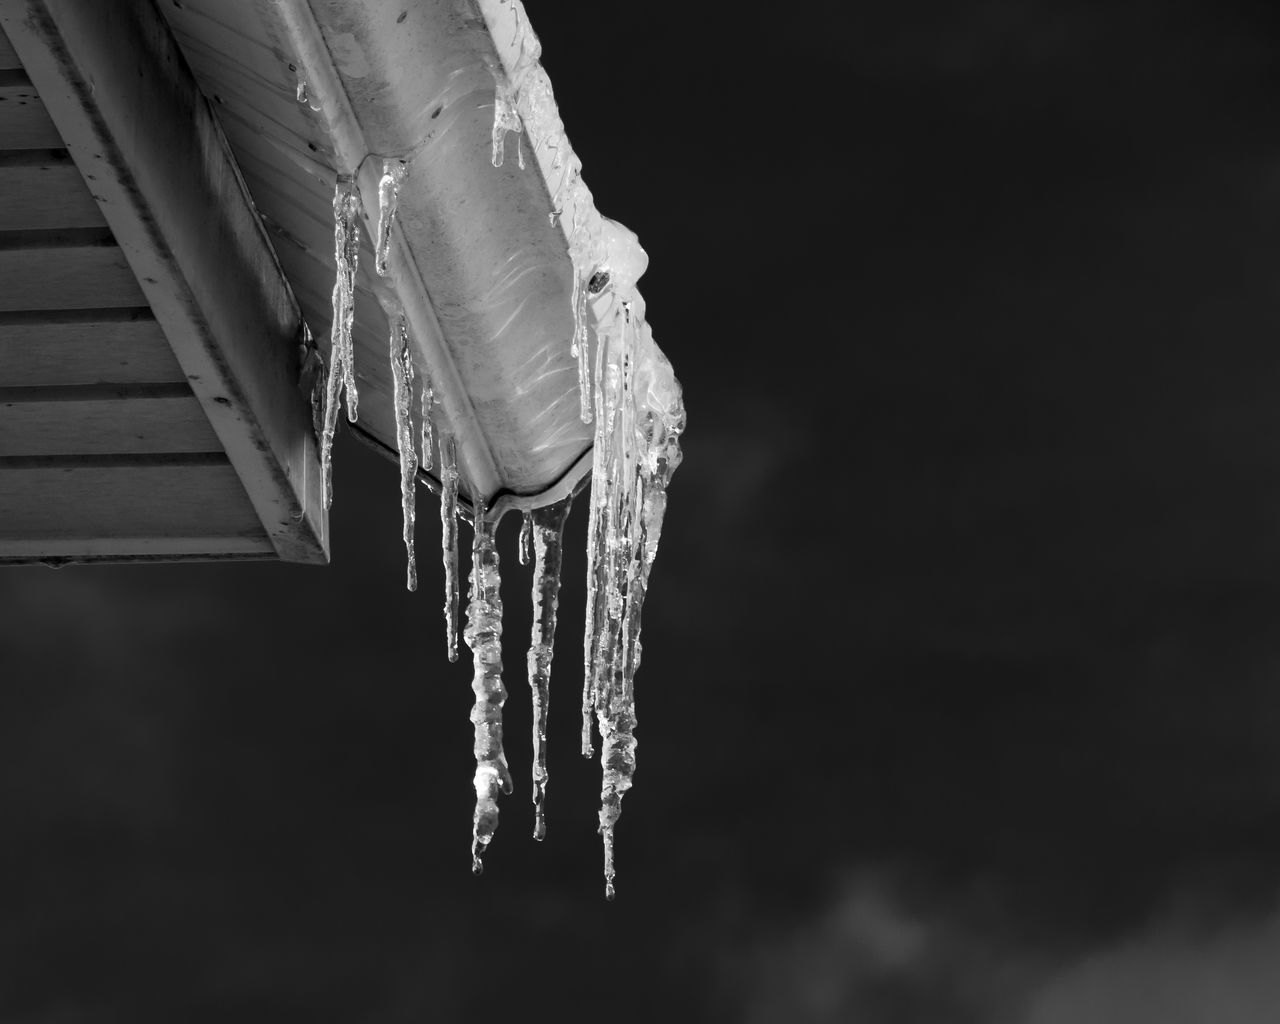 Black and White Ice Black And White Black And White Photography Black Background Cold Day Hanging Icicles No People Oudoors Winter